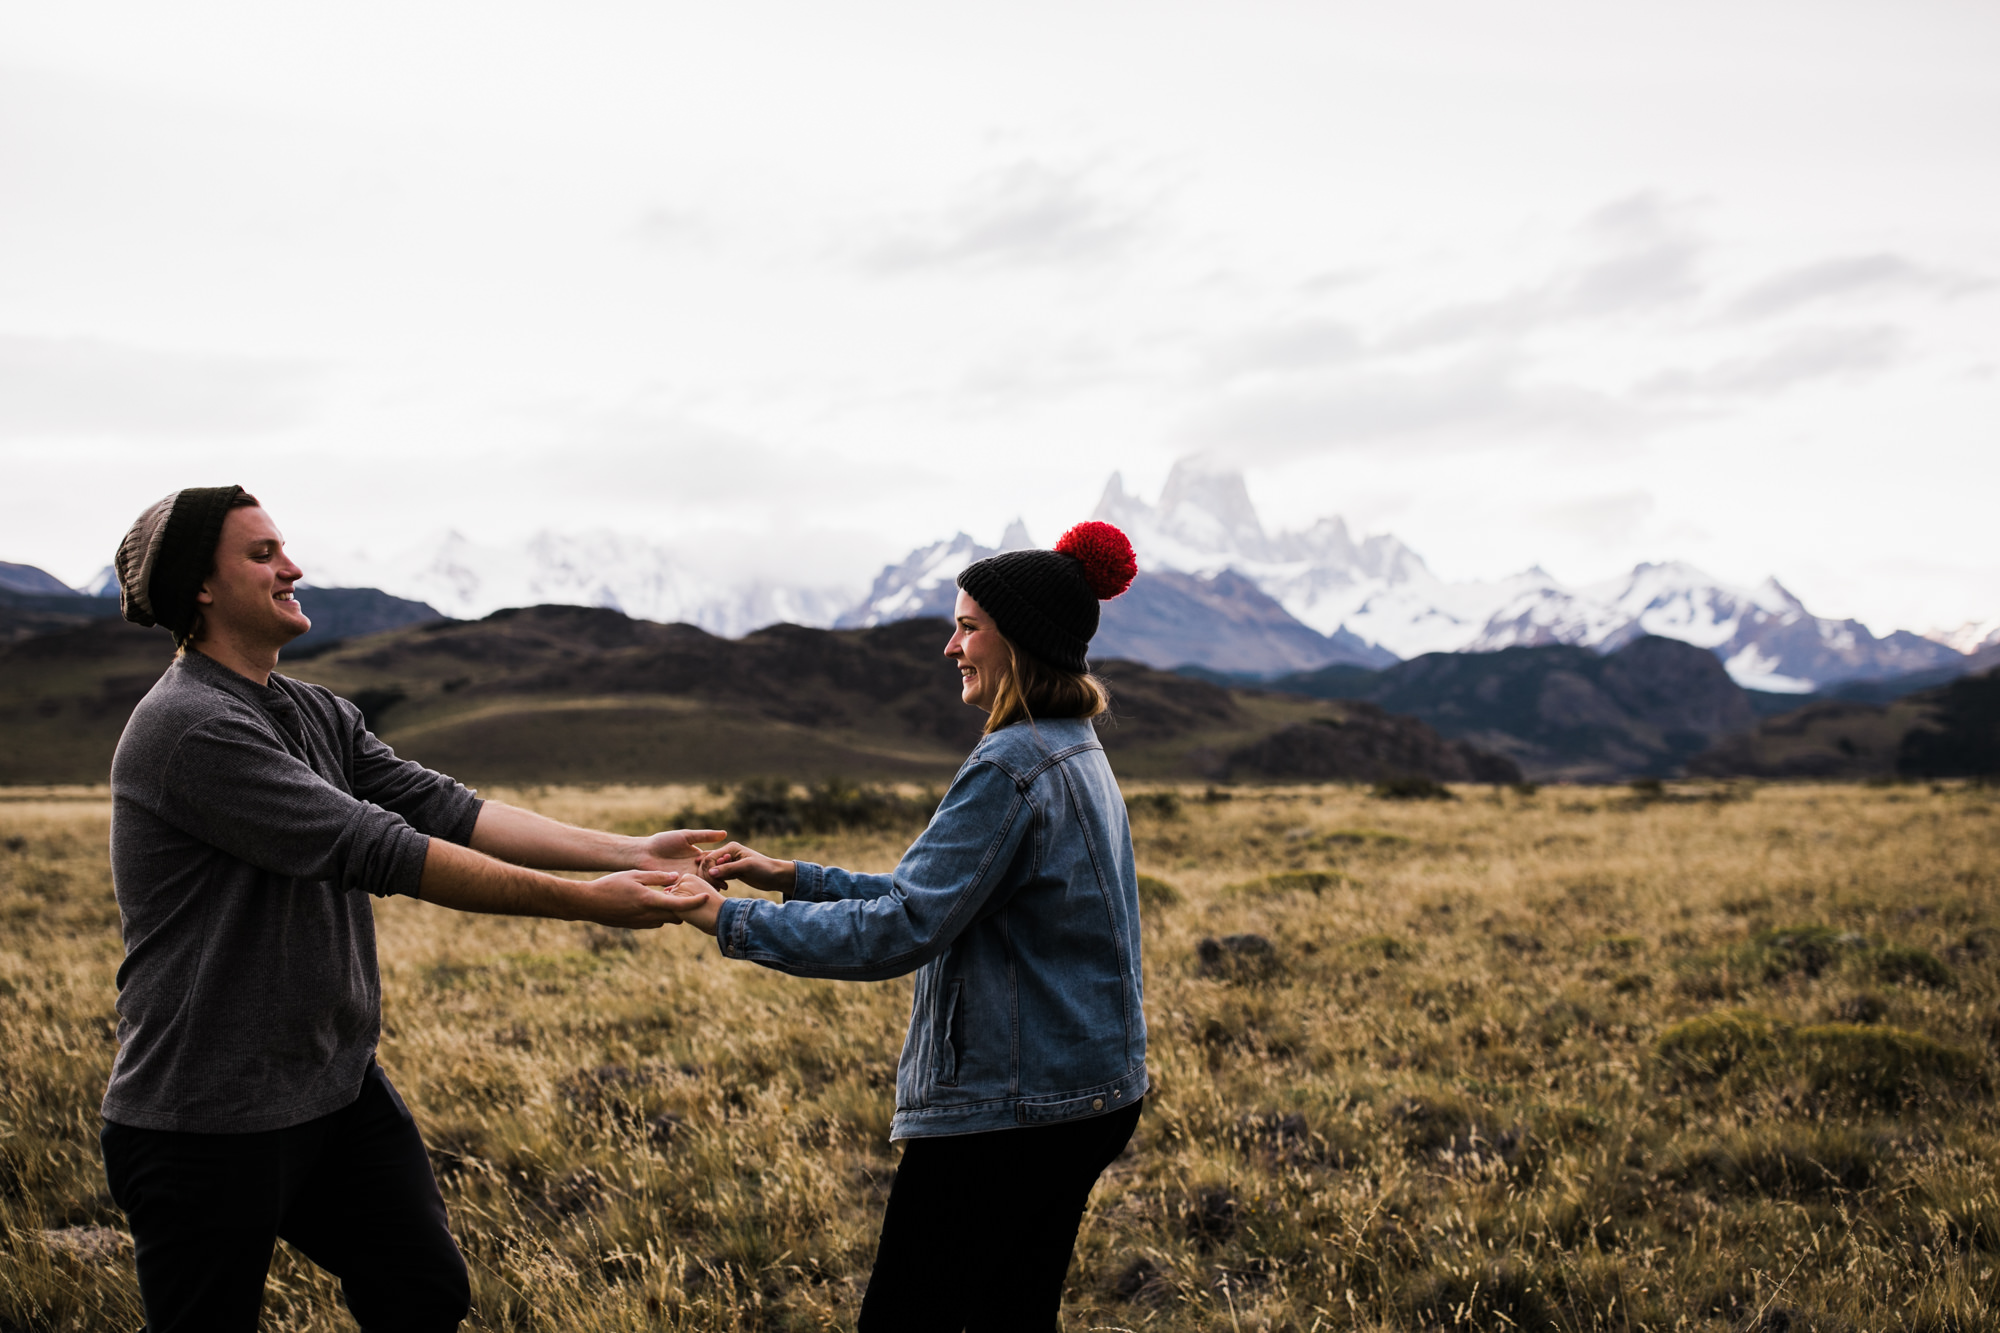 rich + anni's adventure travel session in el chalten | fitz roy, patagonia, argentina | patagonia destination elopement photographer | the hearnes adventure photography | www.thehearnes.com